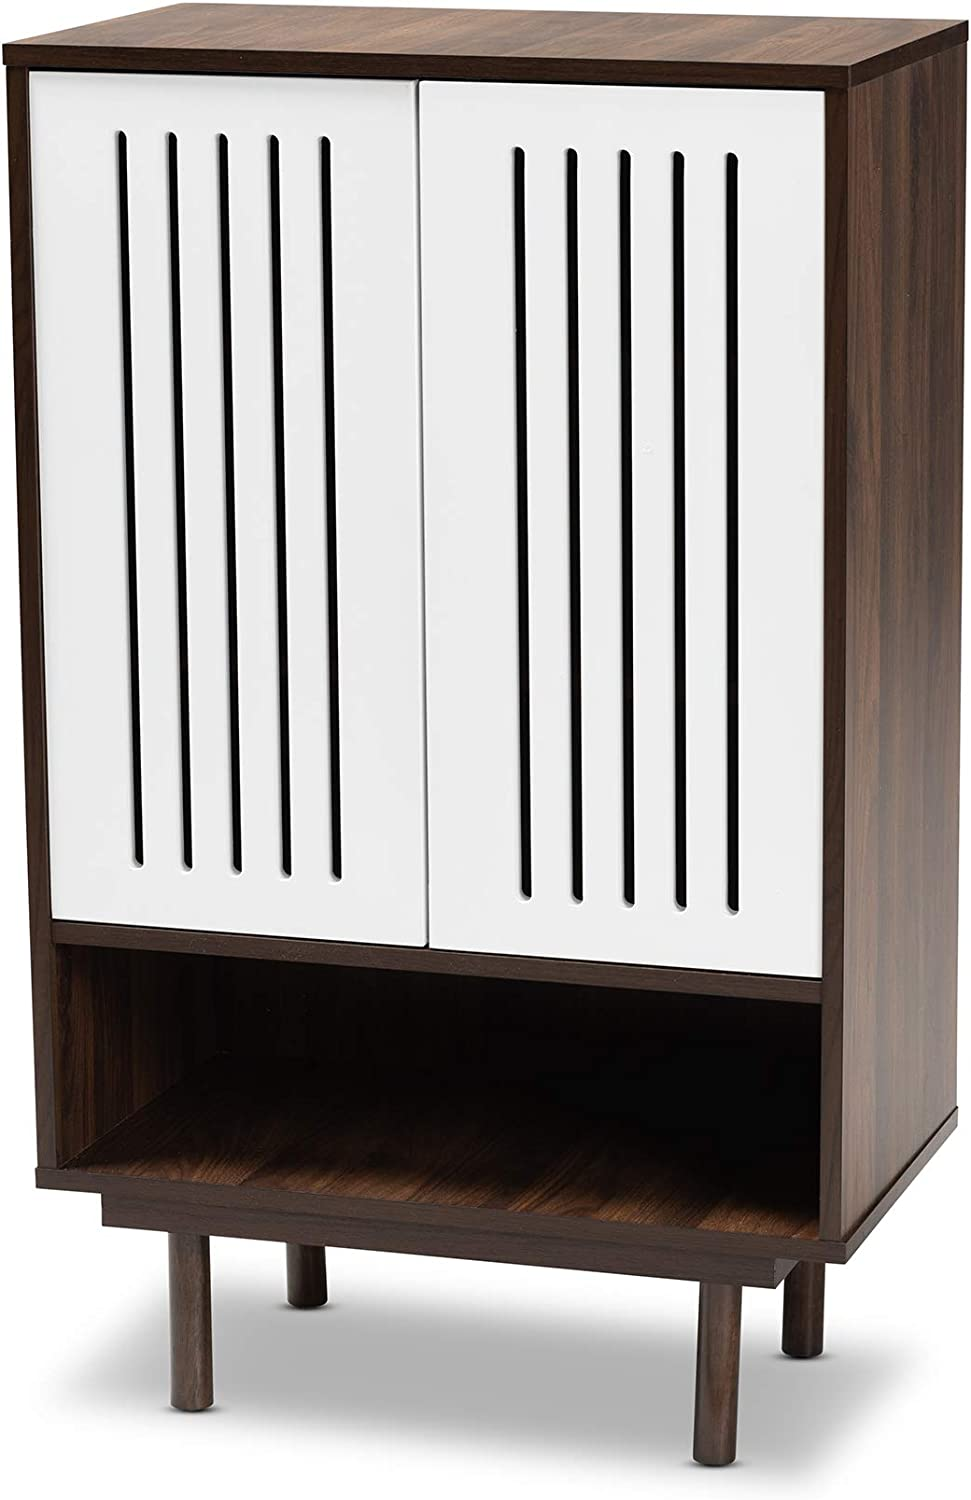 Baxton Studio Shoe Cabinets Walnut White Max 74% Clearance SALE! Limited time! OFF